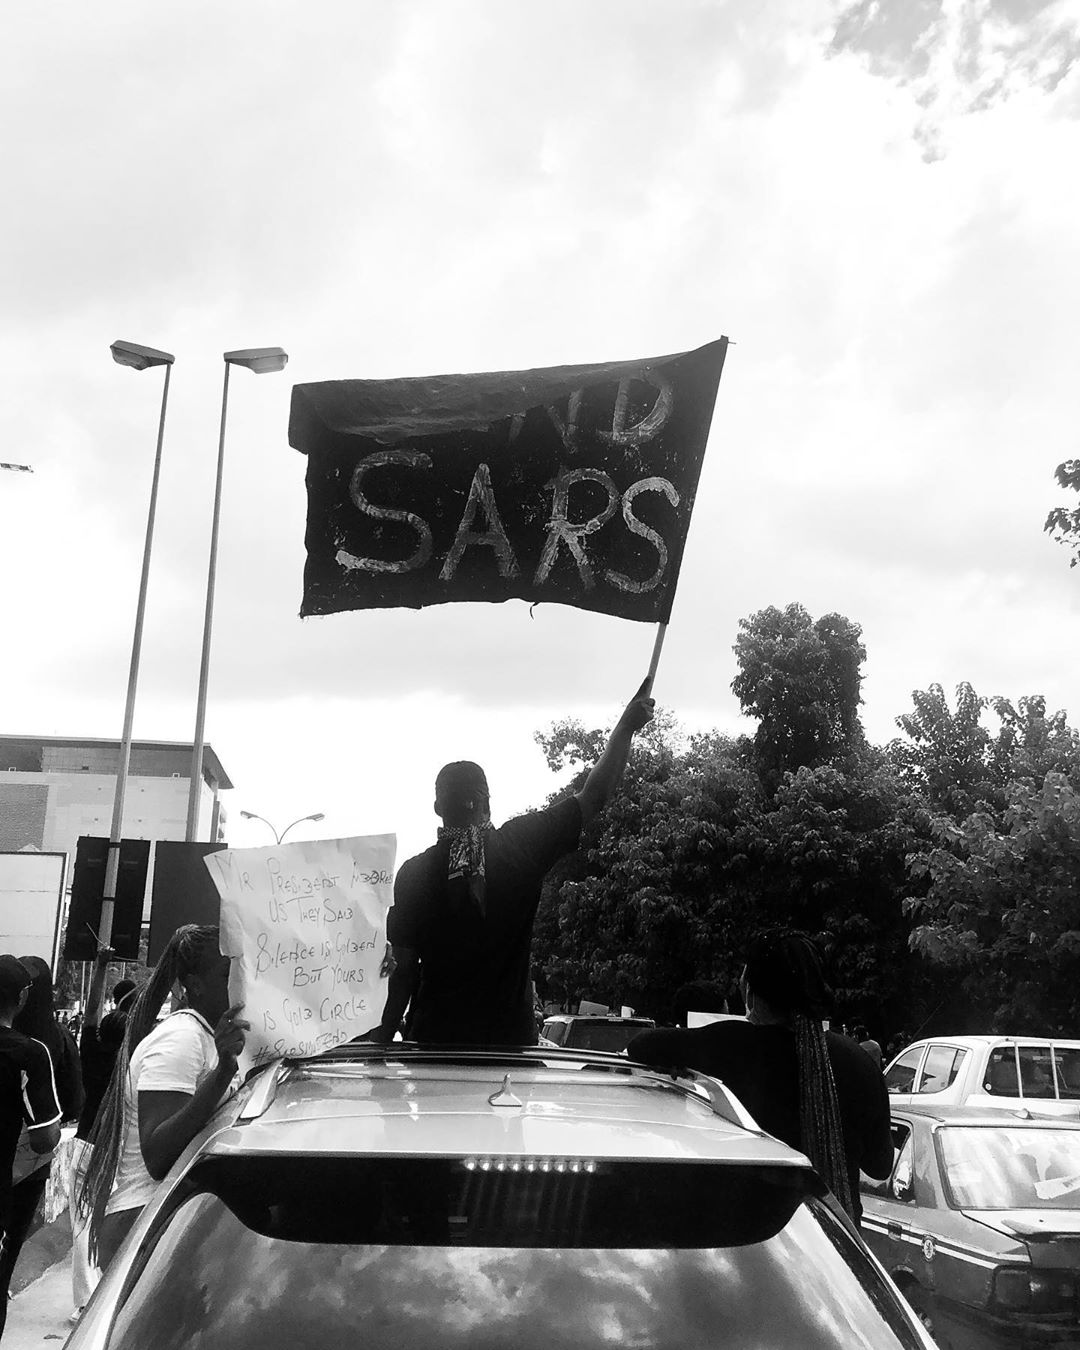 END SARS IN KANO